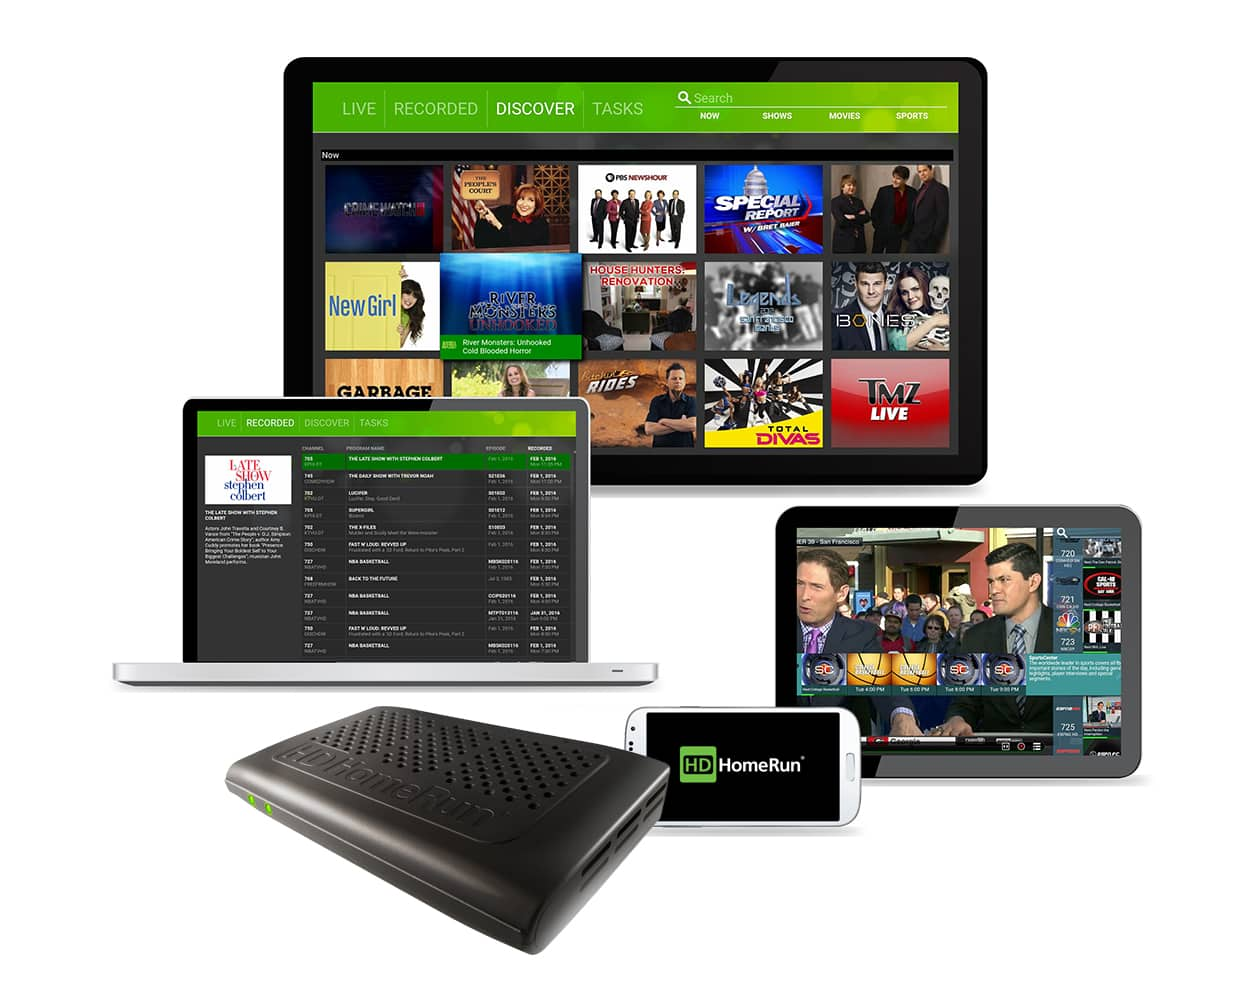 SiliconDust HDHomeRun Prime CableCARD 3-Tuner $104.99